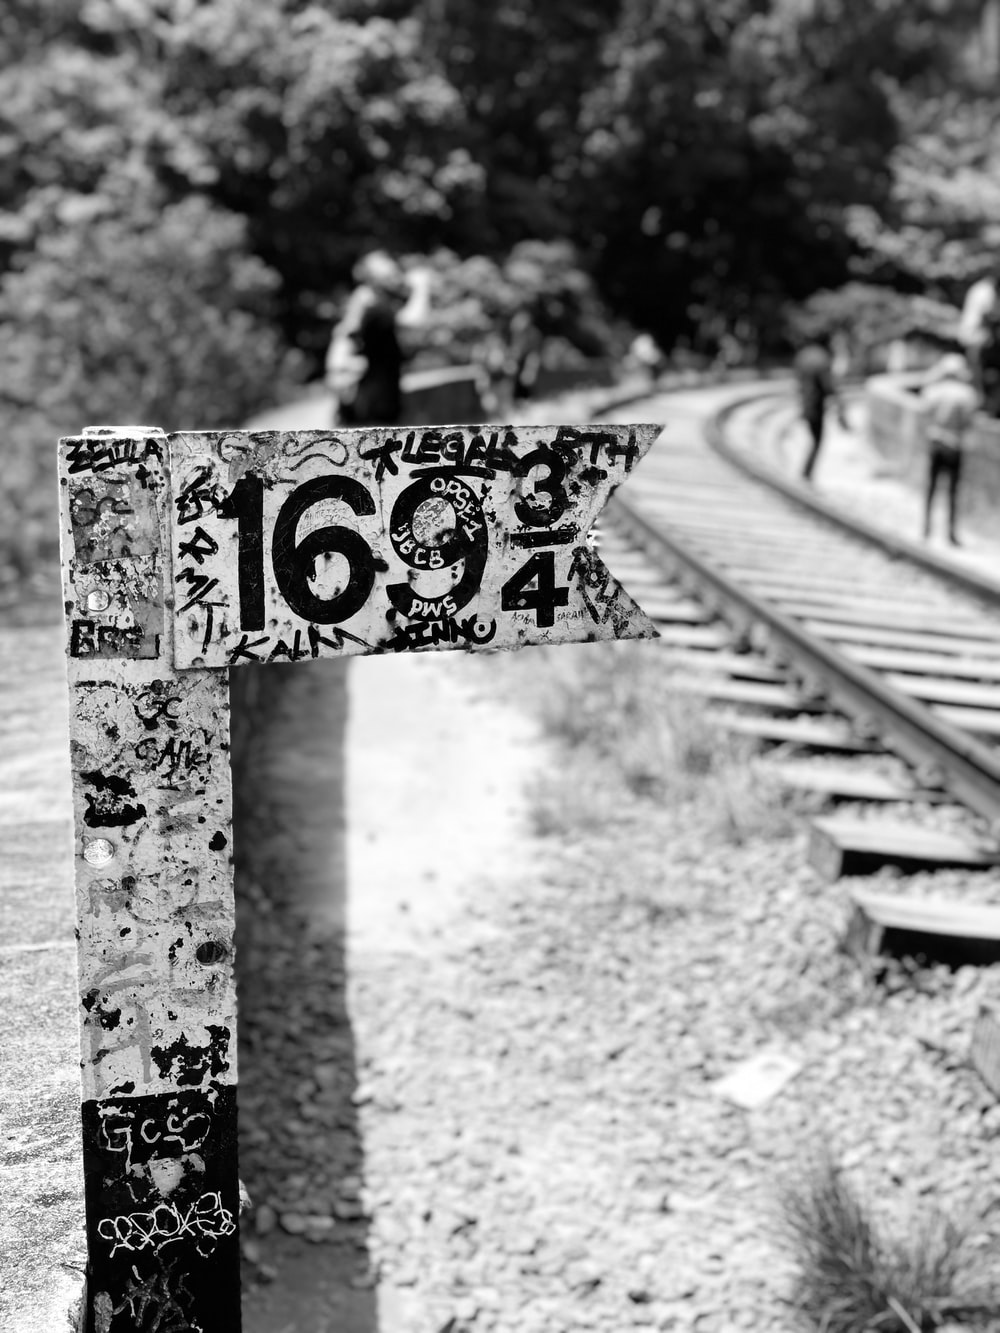 grayscale photo of train 169 3/4 signage